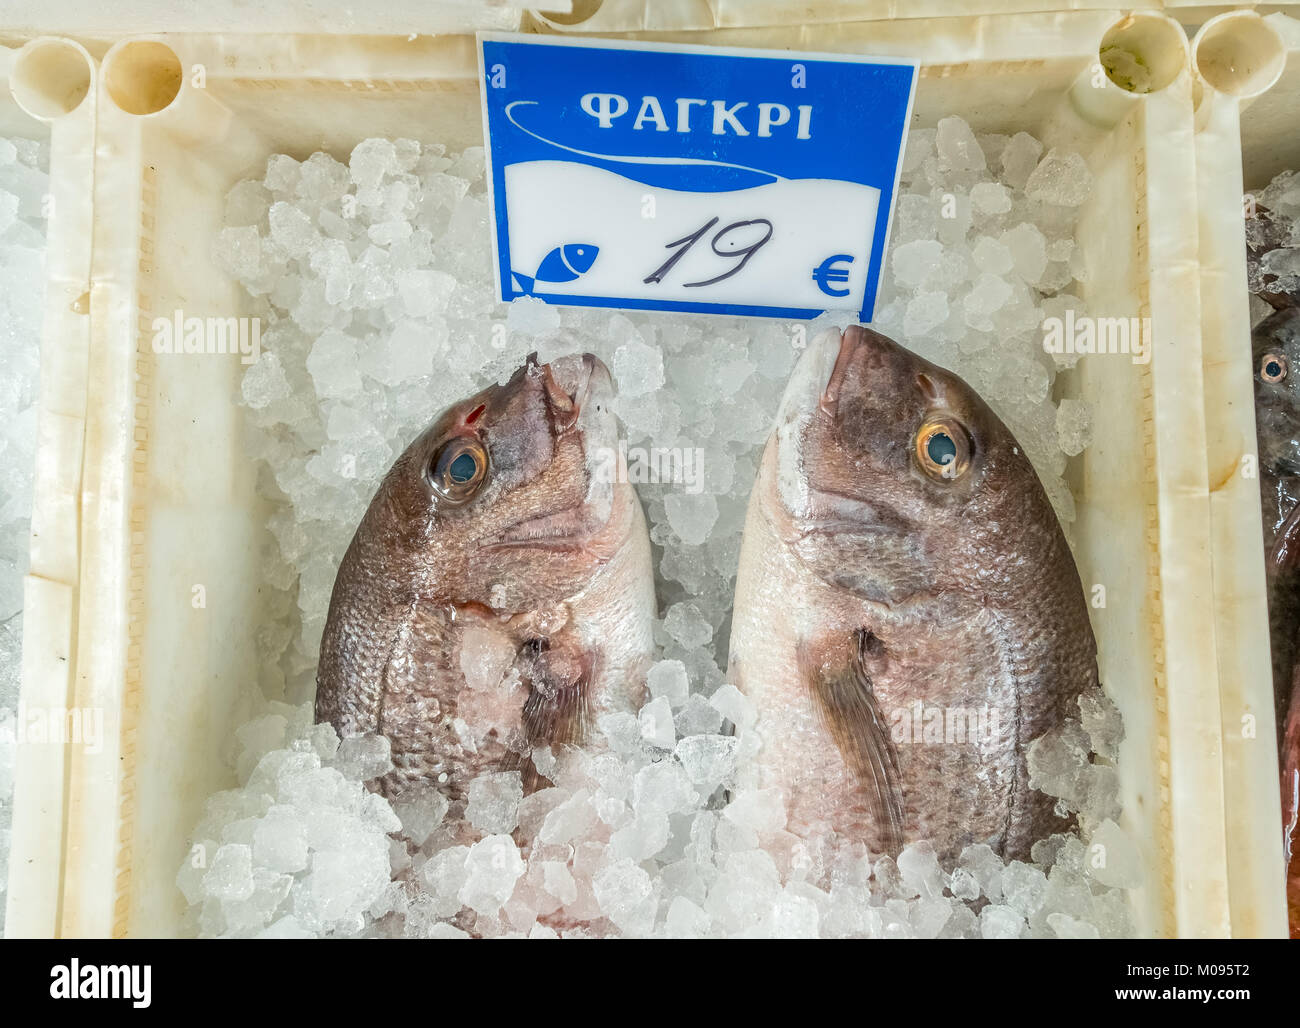 Fishmonger in the streets of Rethimnon, sea bream ΦΑΓΚΡΙ, fish on ice, Rethymno, Europe, Crete, Greece, Rethymno, Stock Photo